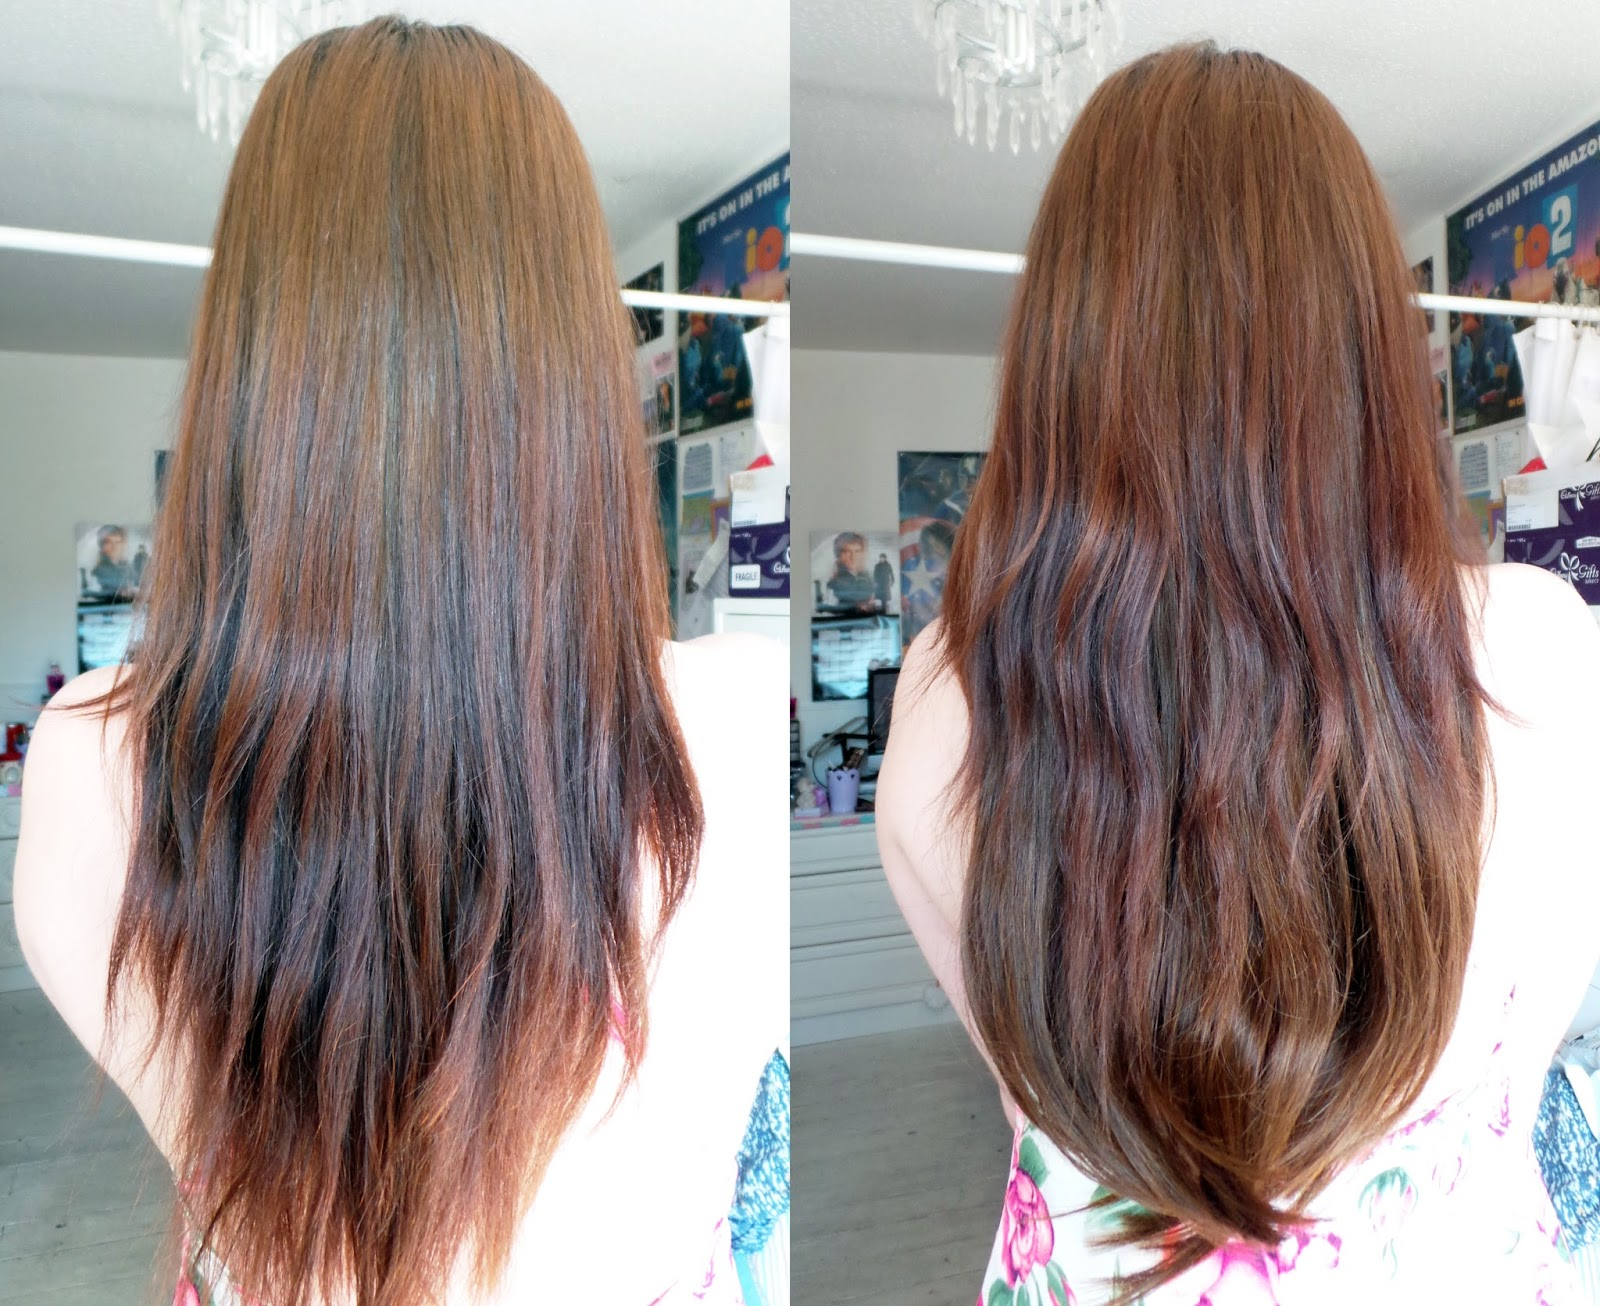 dirty looks hair extensions review, hk full head hair extensions review, dirty looks melted chocolate hair extensions, dirty looks review, beauty blogger, uk beauty blogger, uk hair blogger, hair extensions review, best hair extensions, uk fashion blogger, uk fashion blog, fashion blogger,